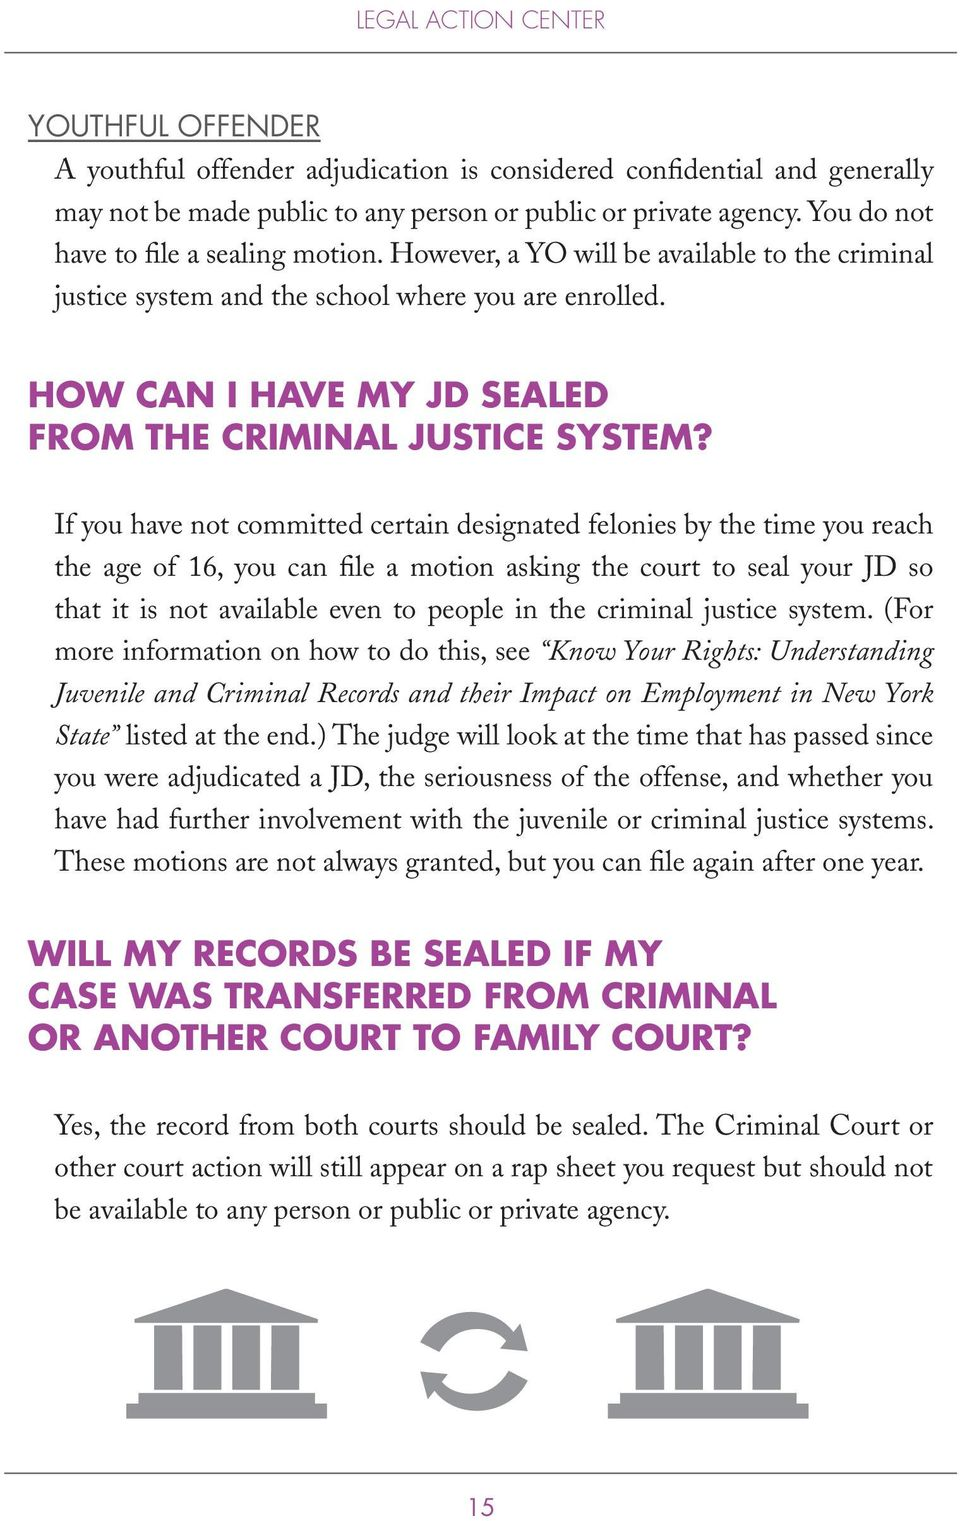 HOW CAN I HAVE MY JD SEALED FROM THE CRIMINAL JUSTICE SYSTEM?